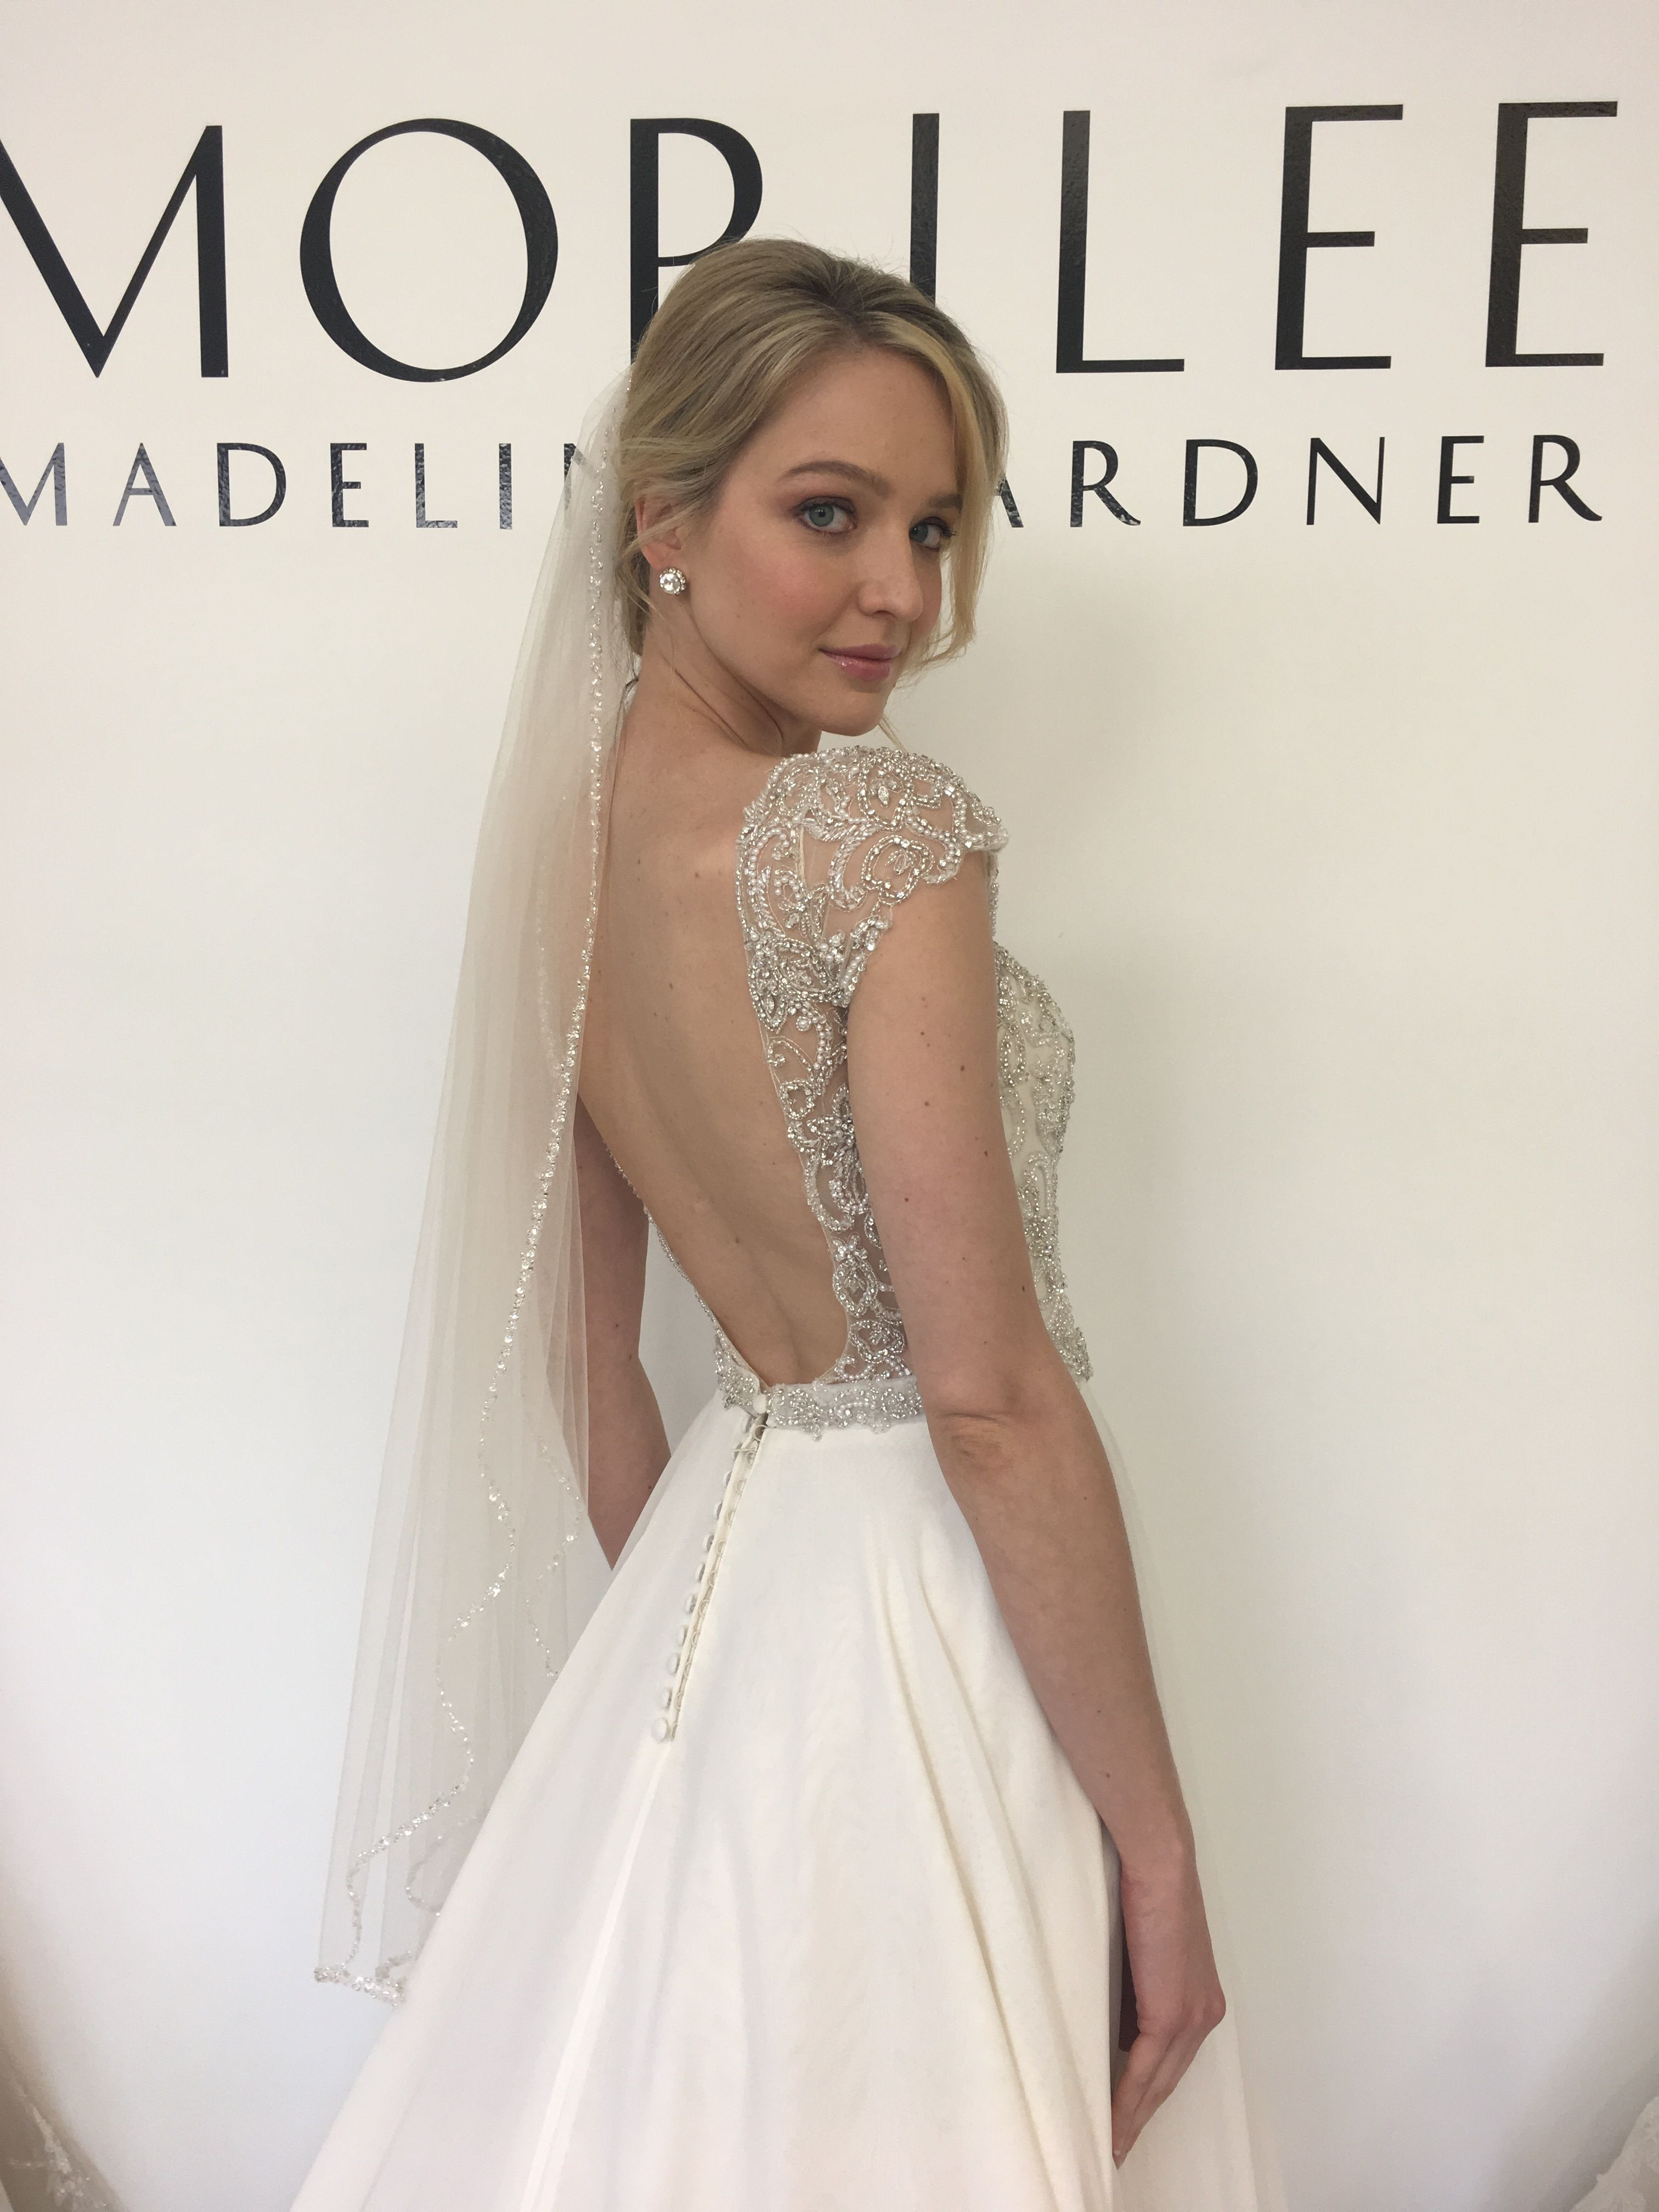 b8a1abf3a8d Morilee by Madeline Gardner Vintage Inspired Mollie Wedding Dress. Gatsby  Glam Beading on a Cap Sleeve Sweetheart Neckline Bodice.